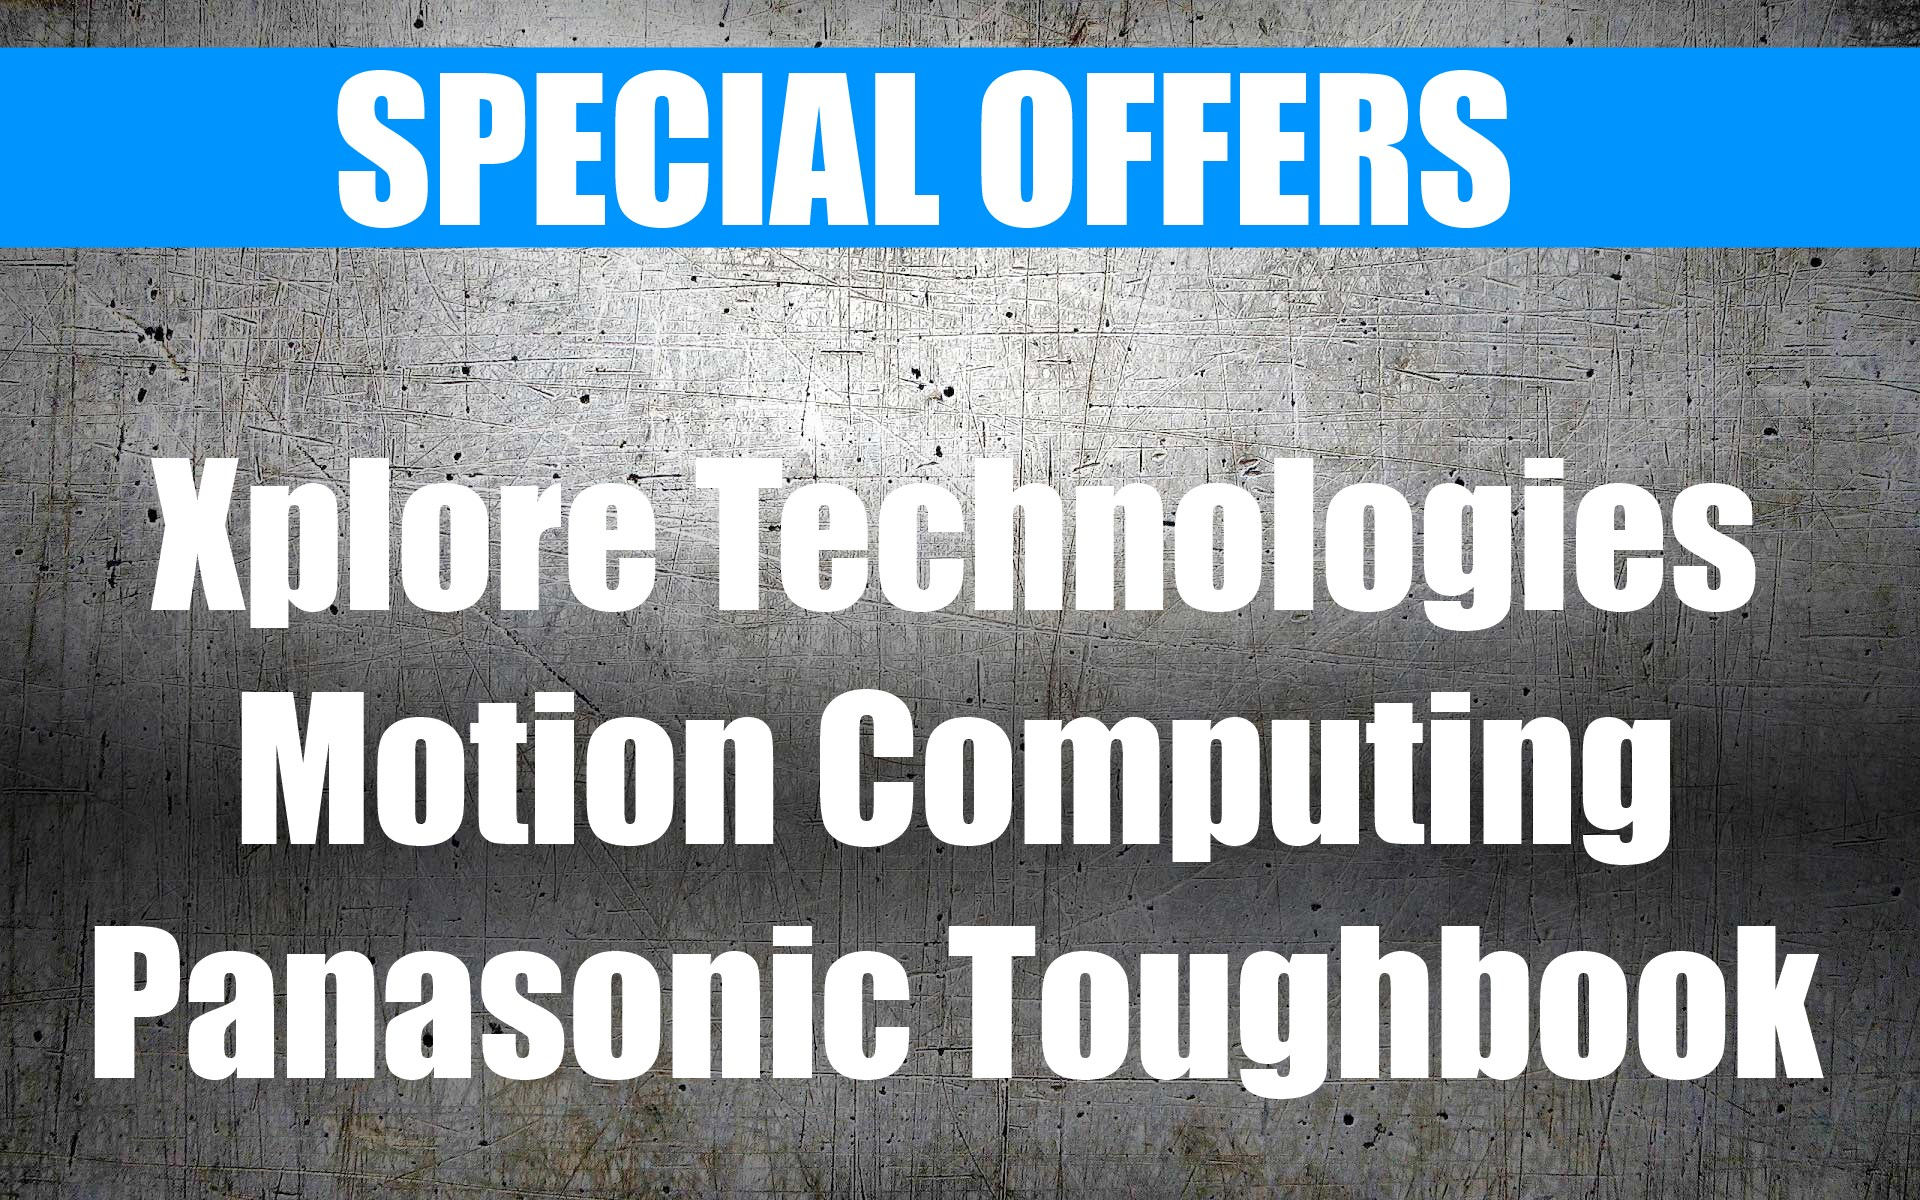 Tablet_PC_Special_Offers.jpg